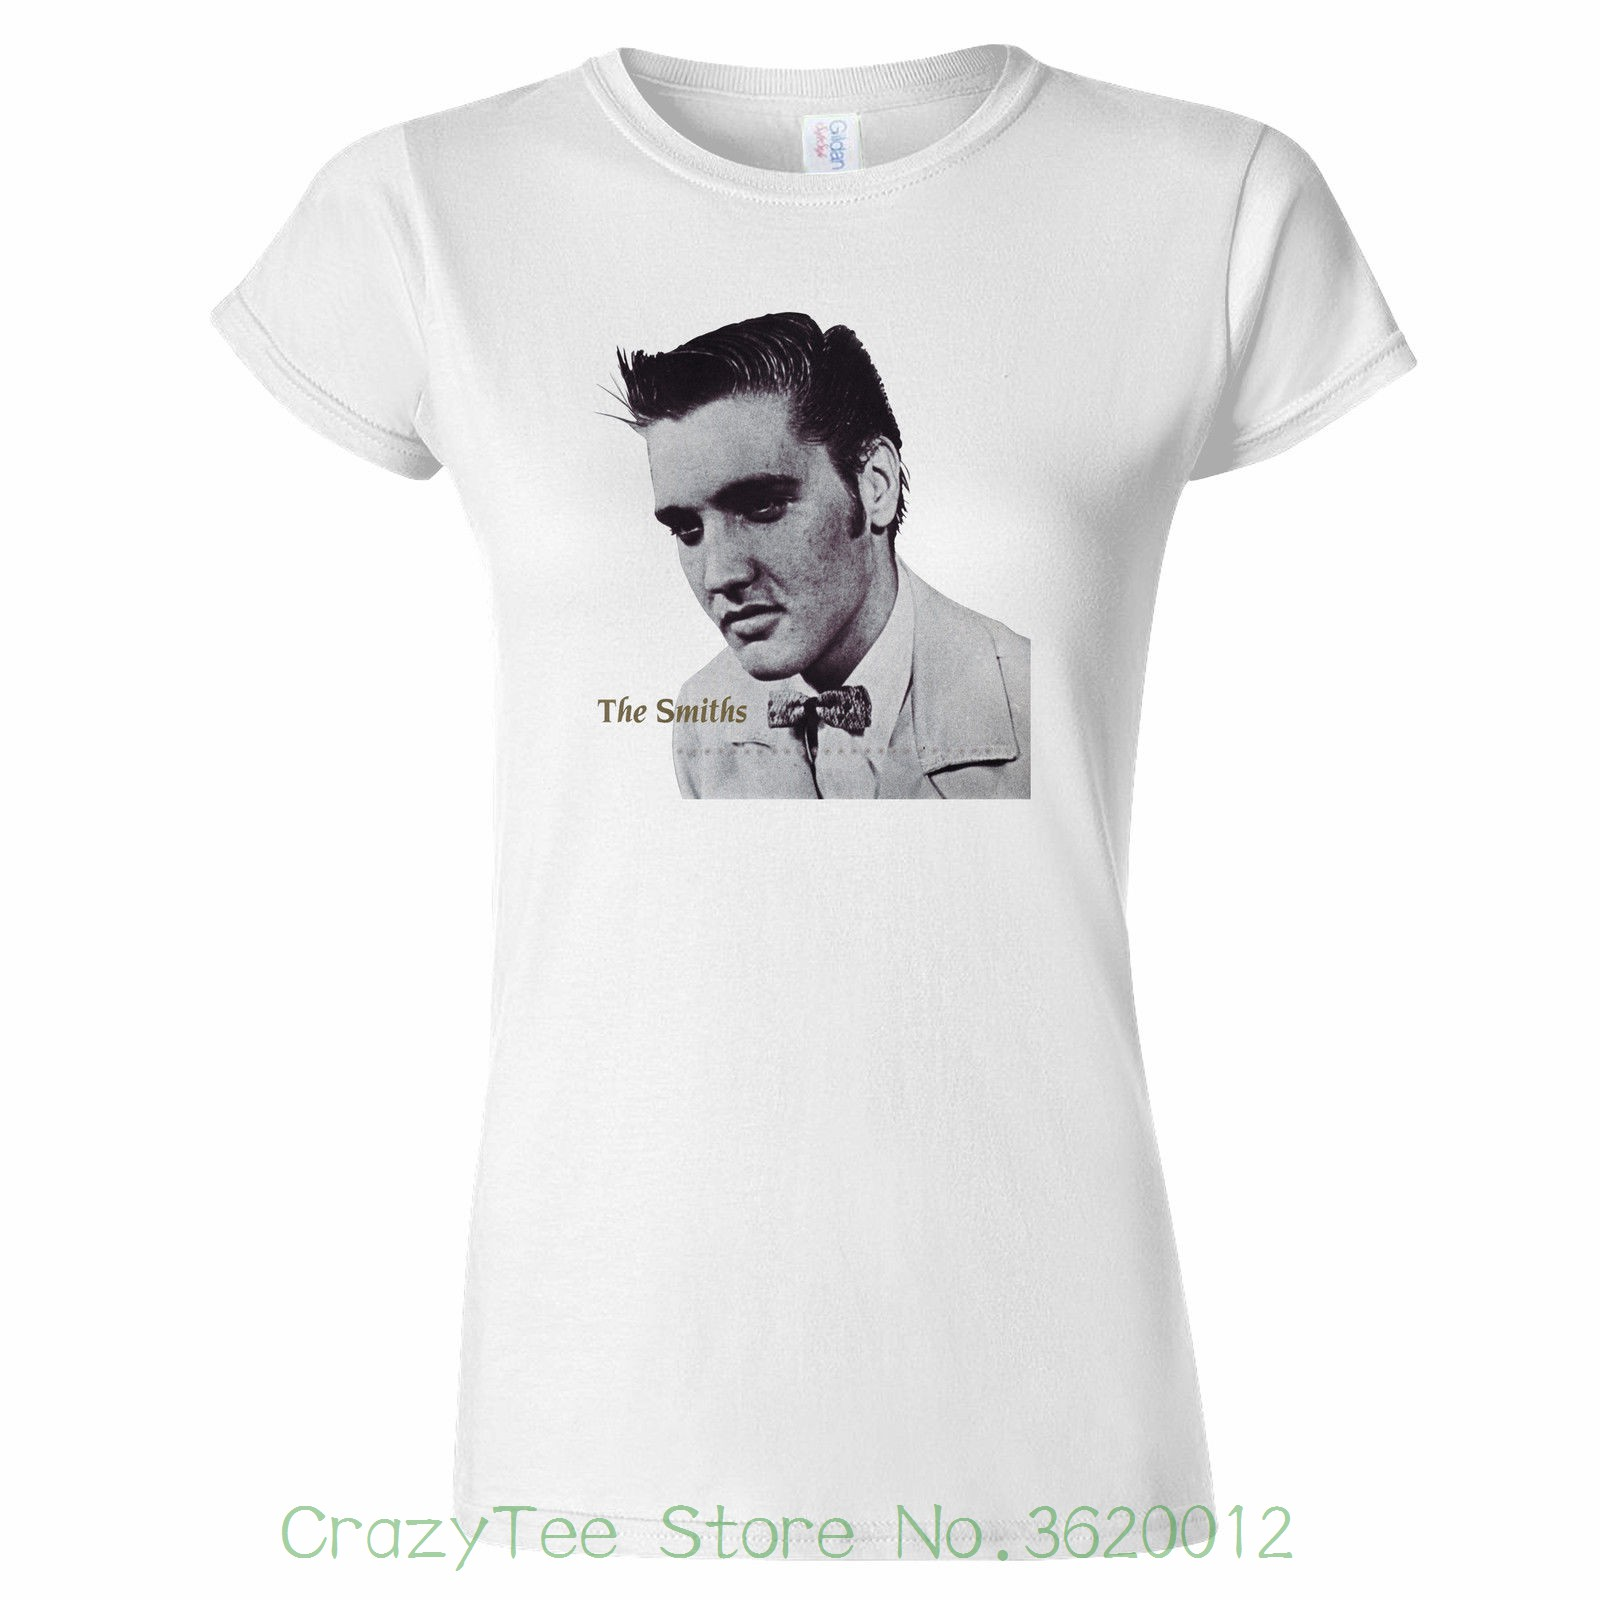 912c094fa179 The Smiths Ladies T Shirt – EDGE Engineering and Consulting Limited